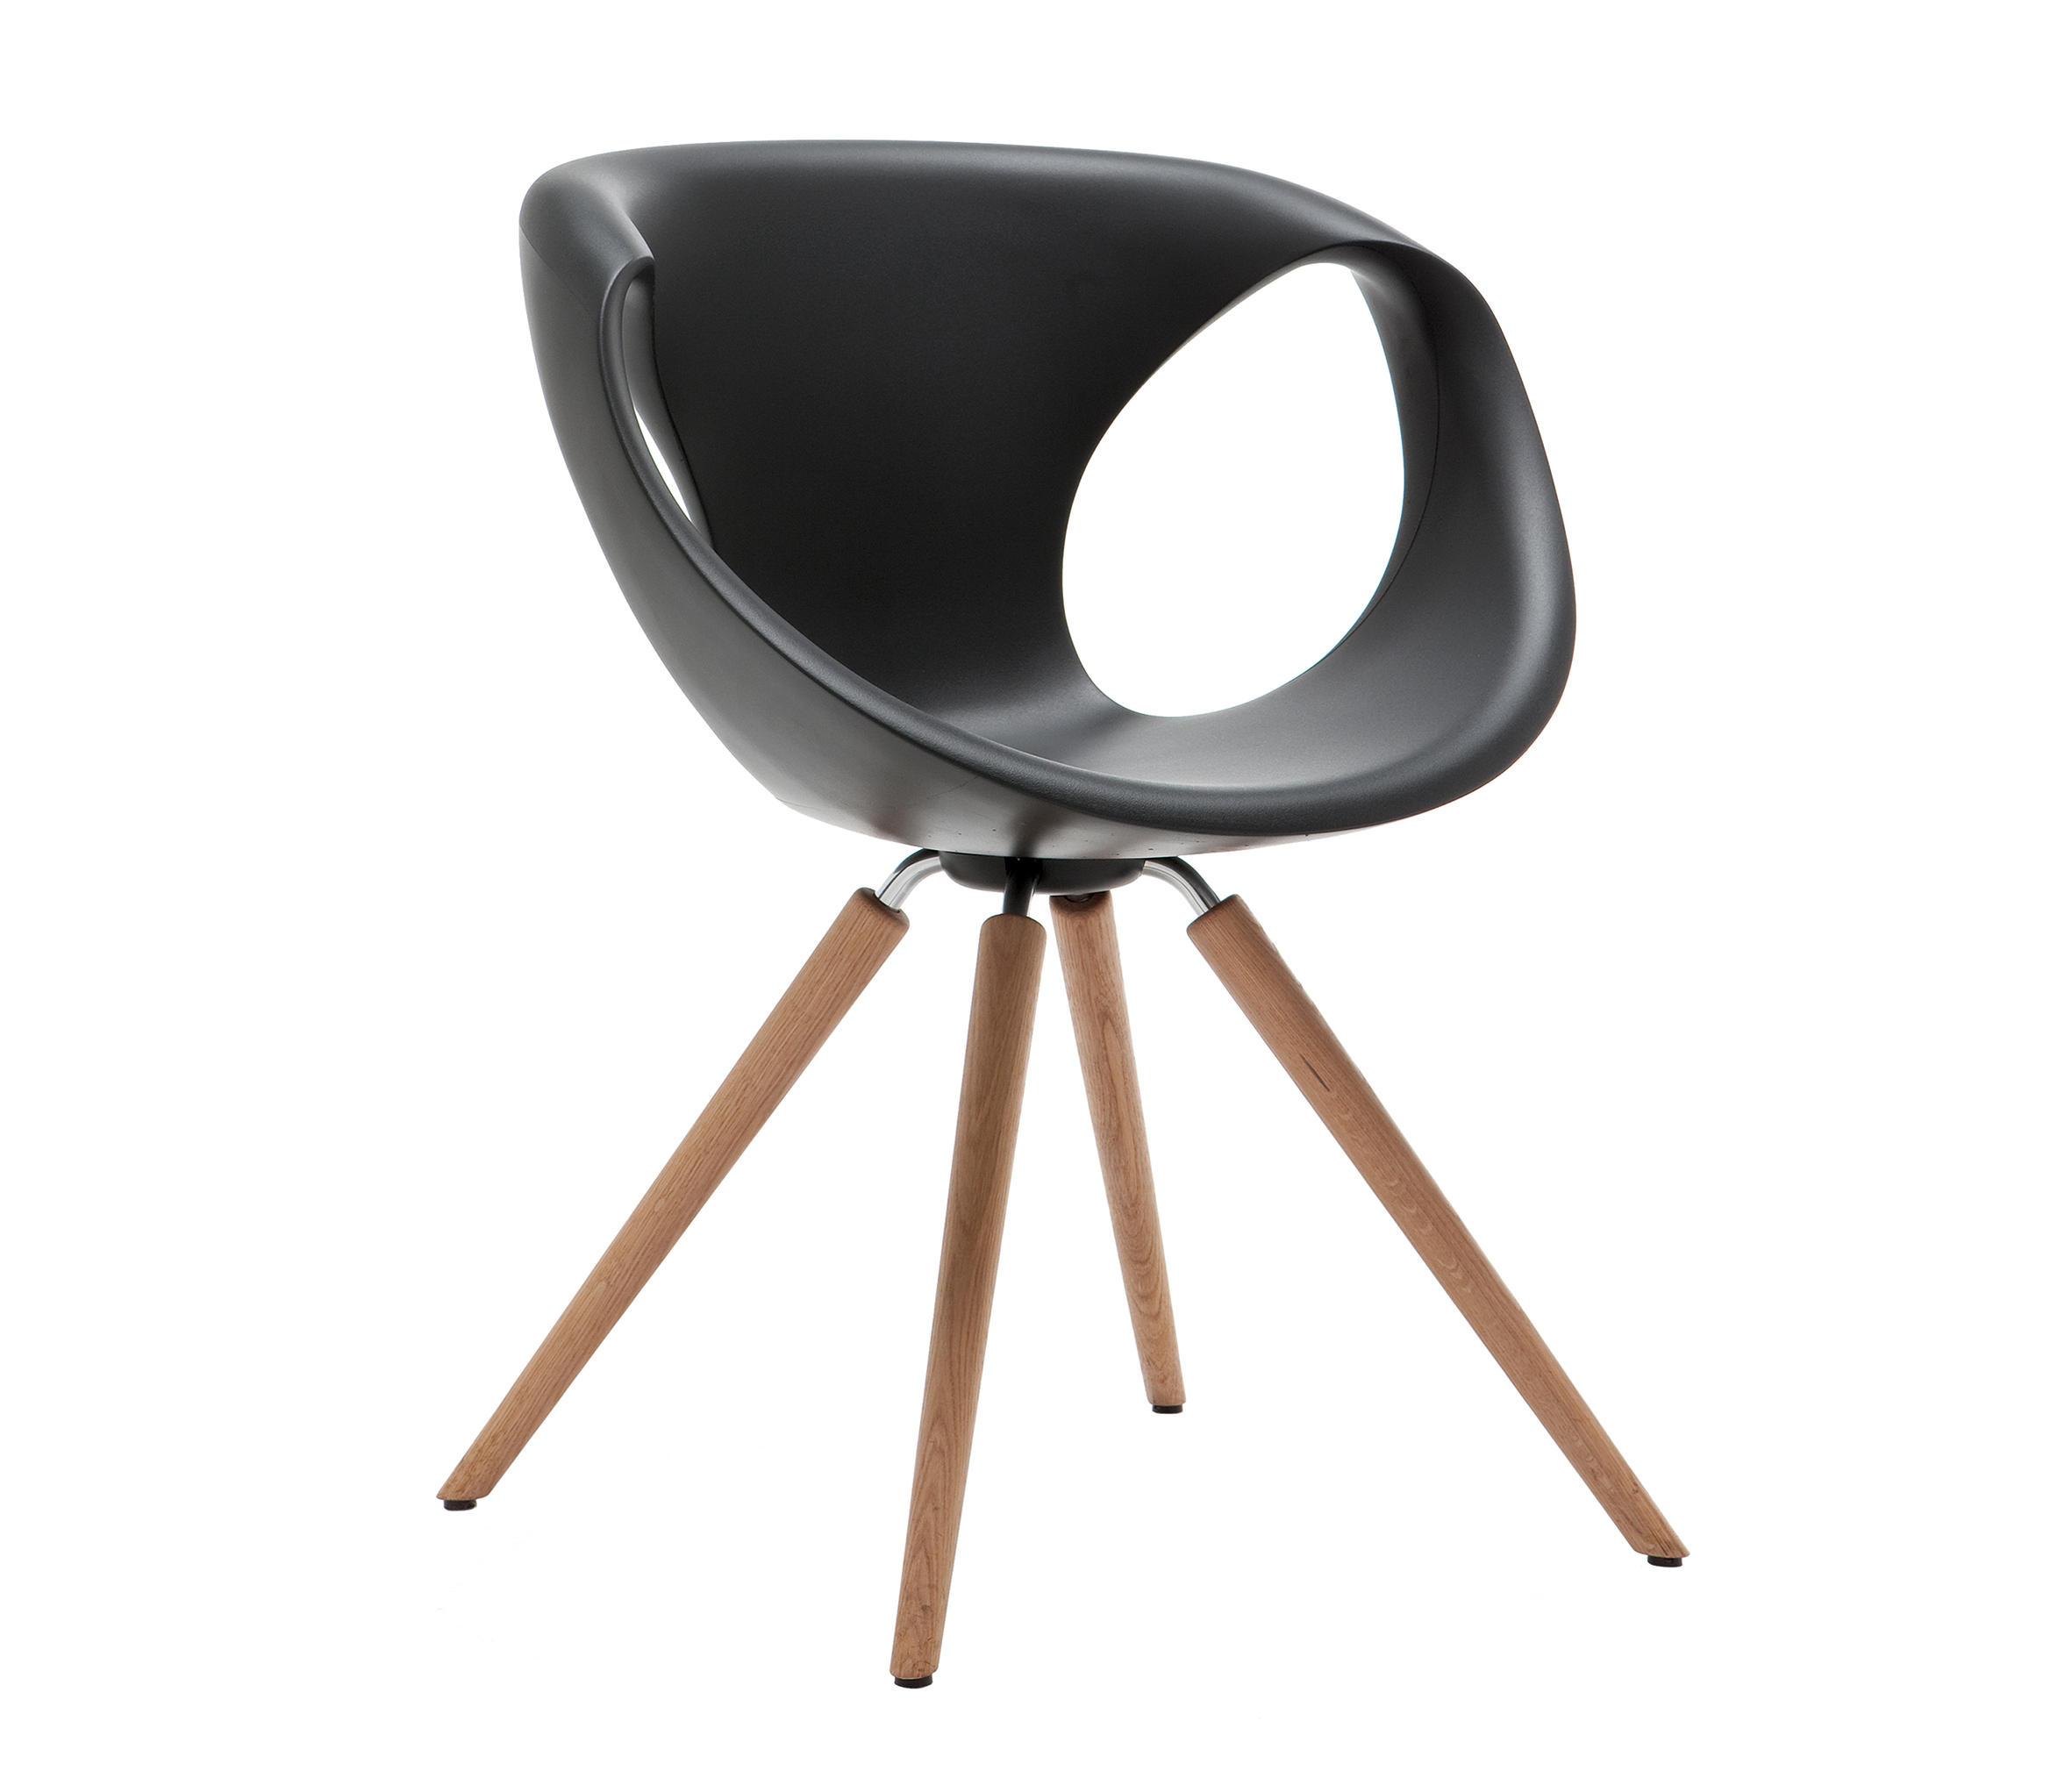 UP CHAIR I 907 - Sedie Tonon | Architonic